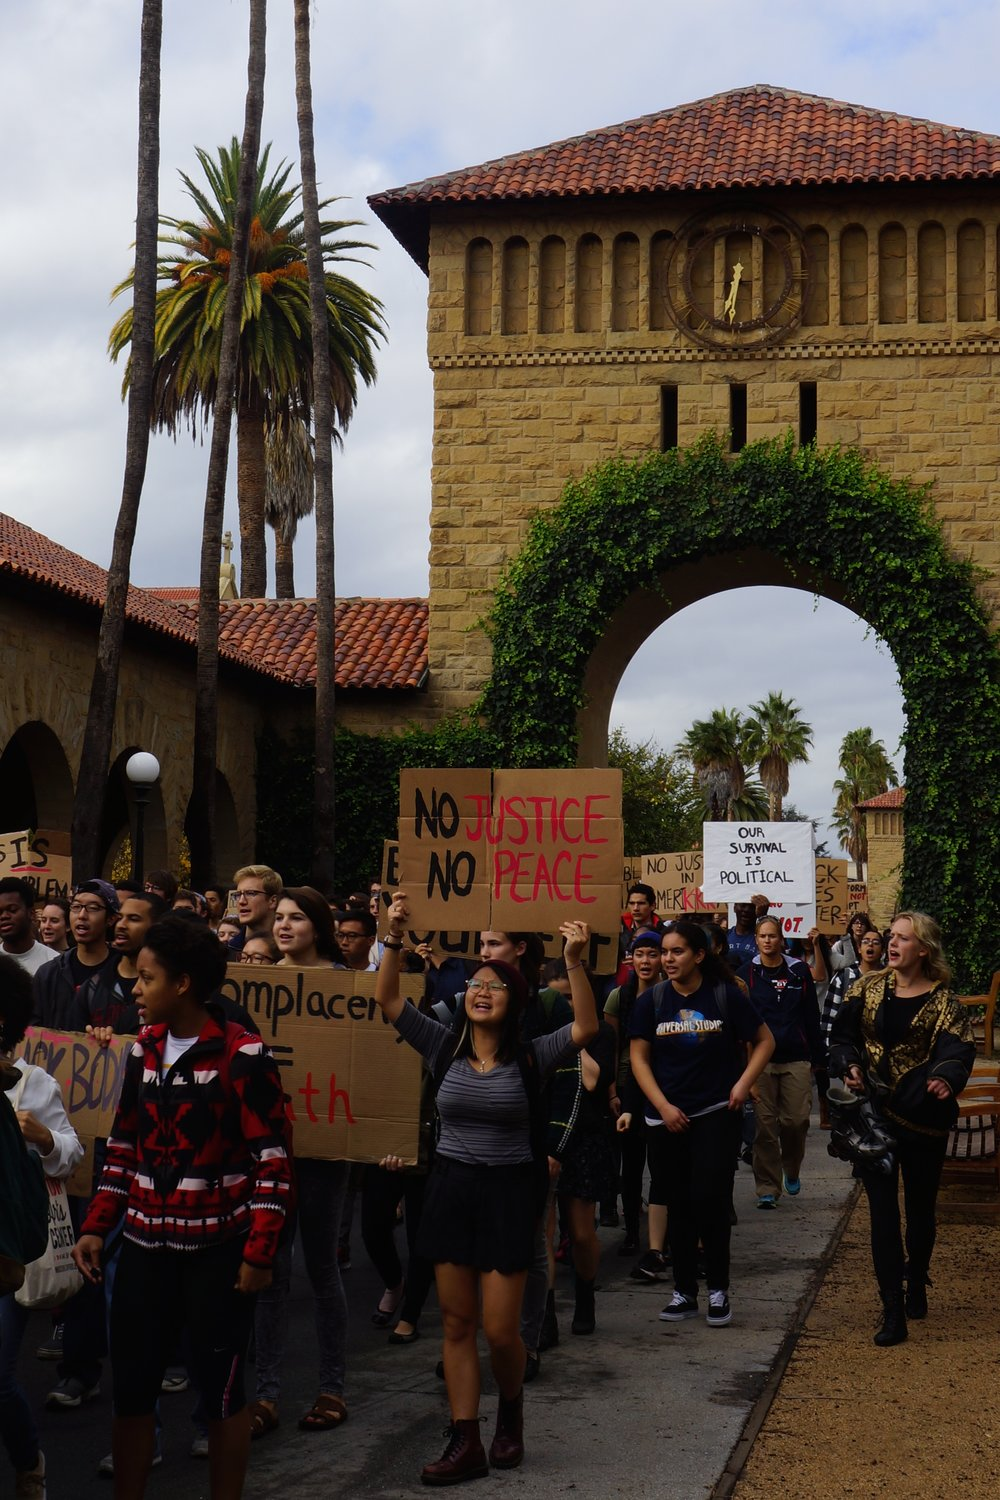 On Monday at 10:01 AM, hundreds of Stanford students and community members joined the national demonstration against the no-indictment decision for the police officer who shot and killed Michael Brown.